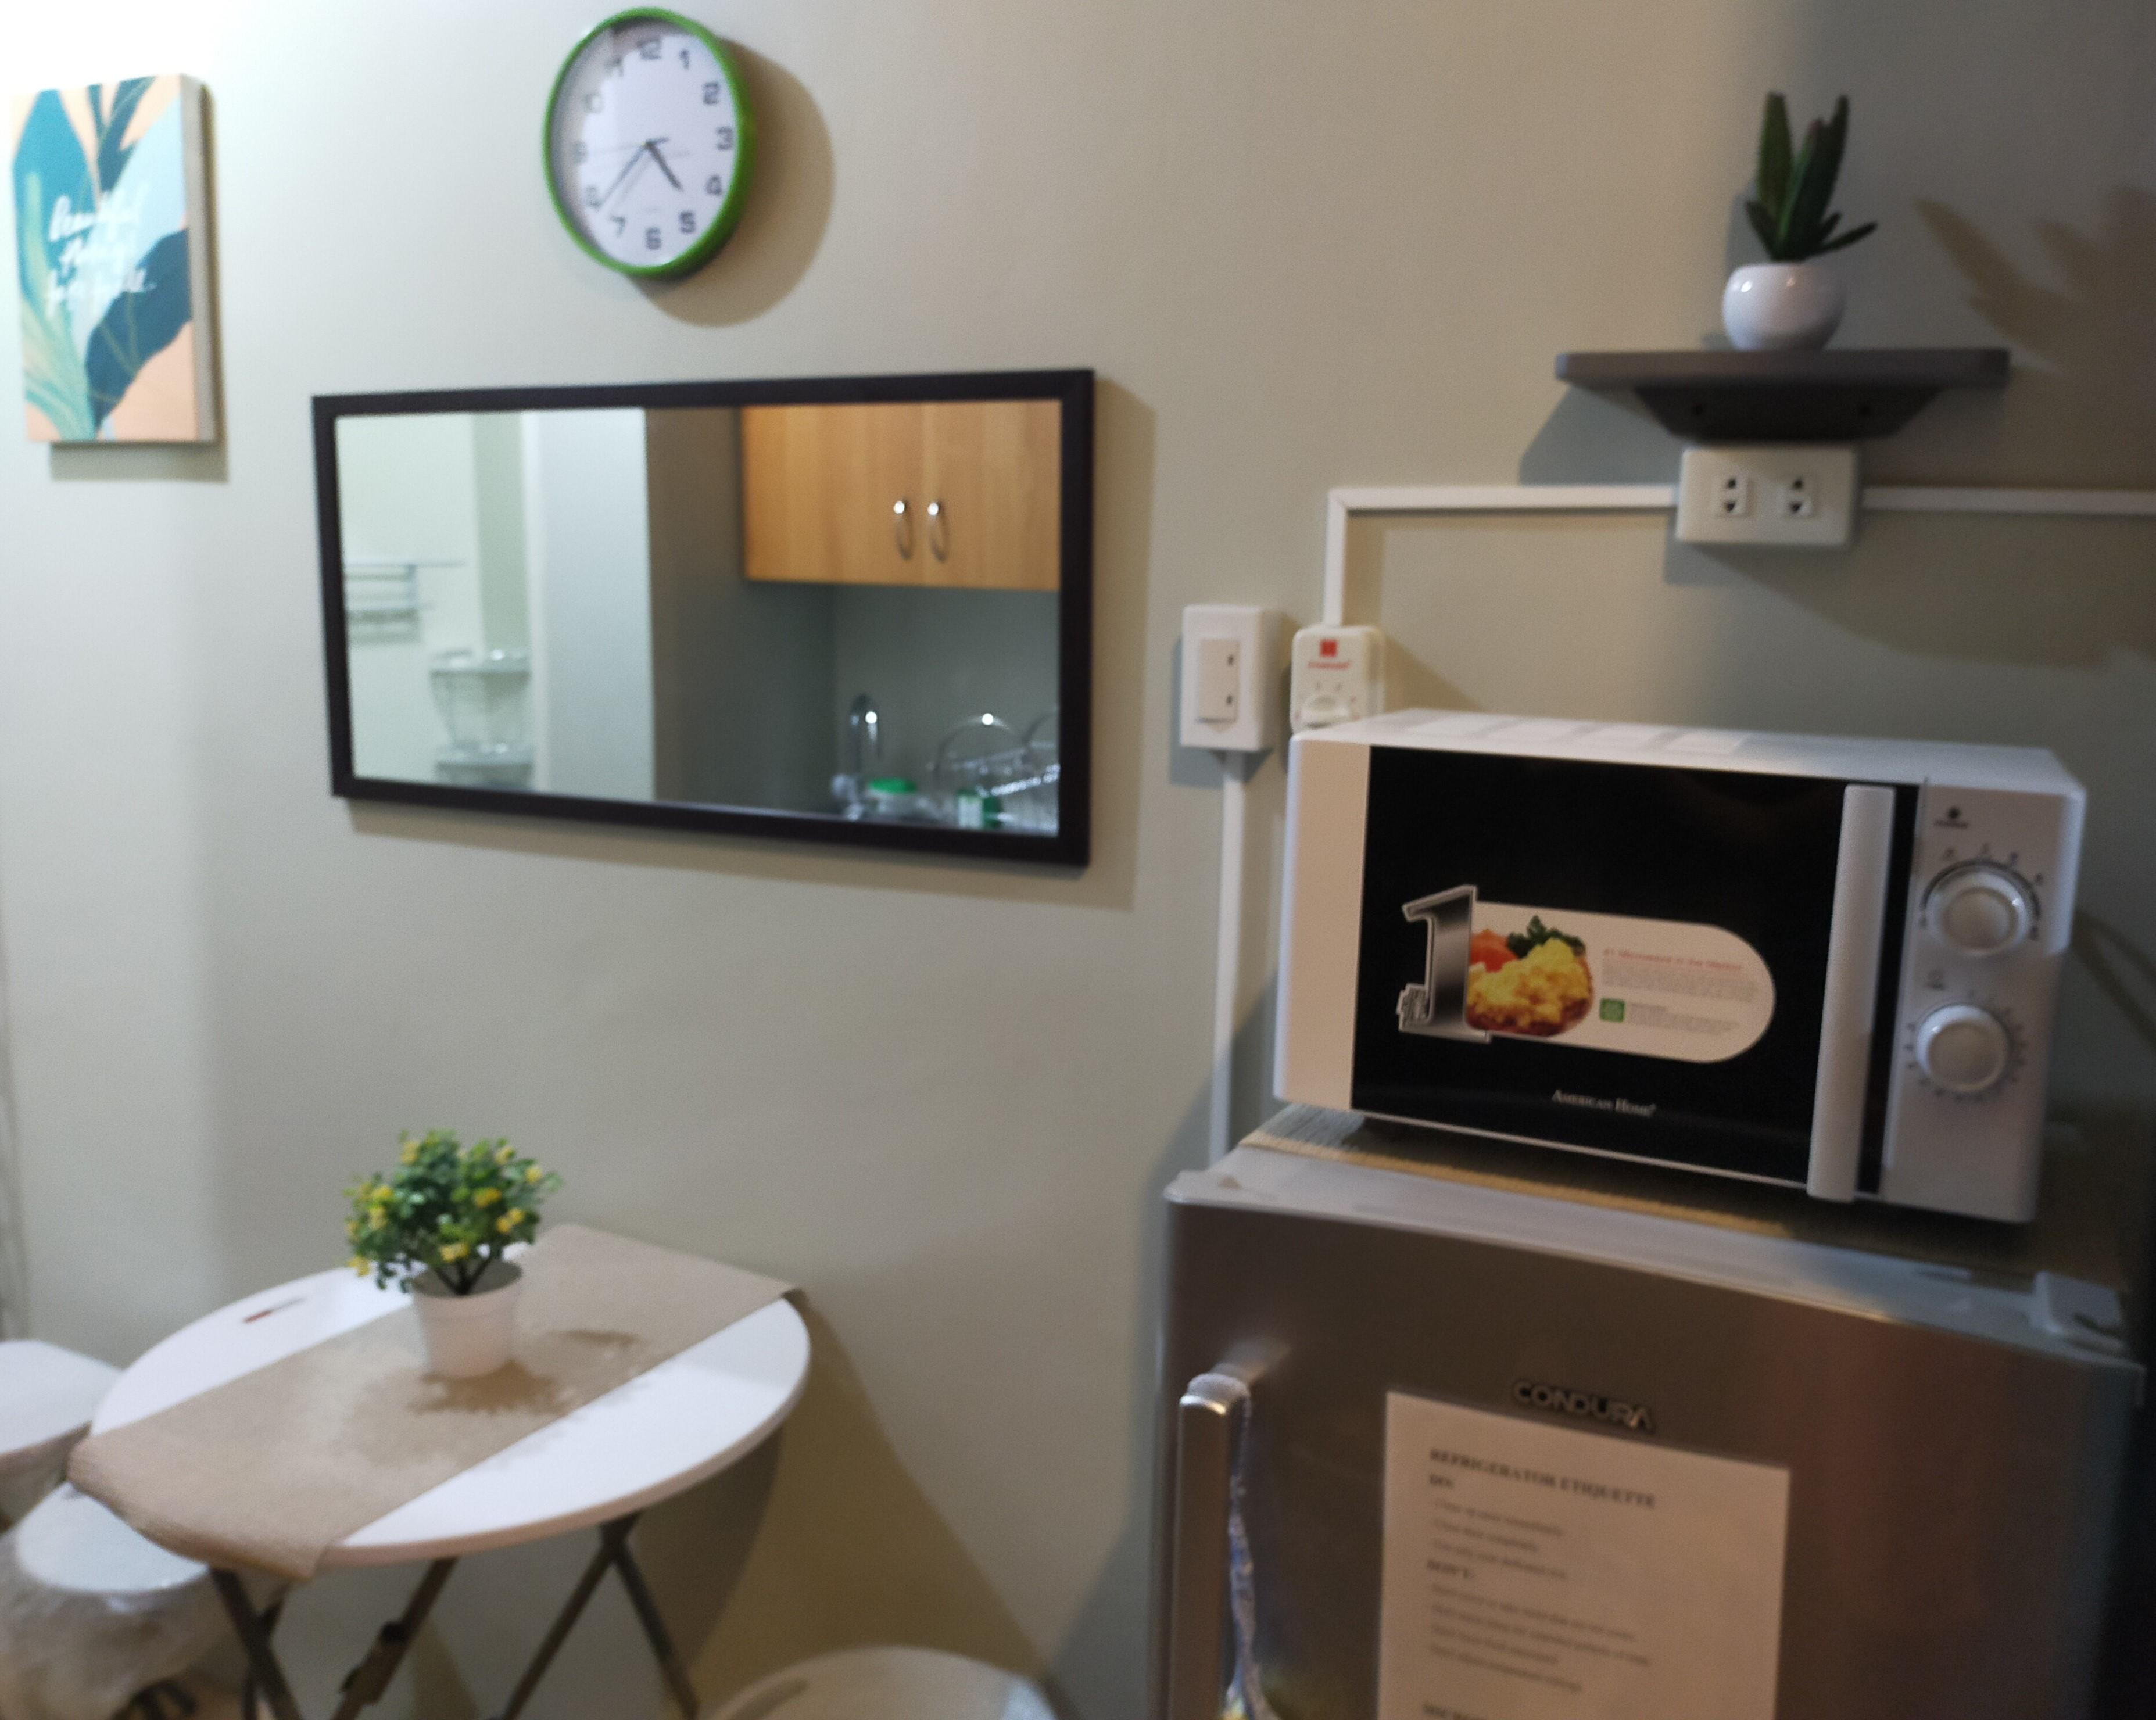 Condo Sharing/Bedspace for Female in Sucat Muntinlupa/Paranaque